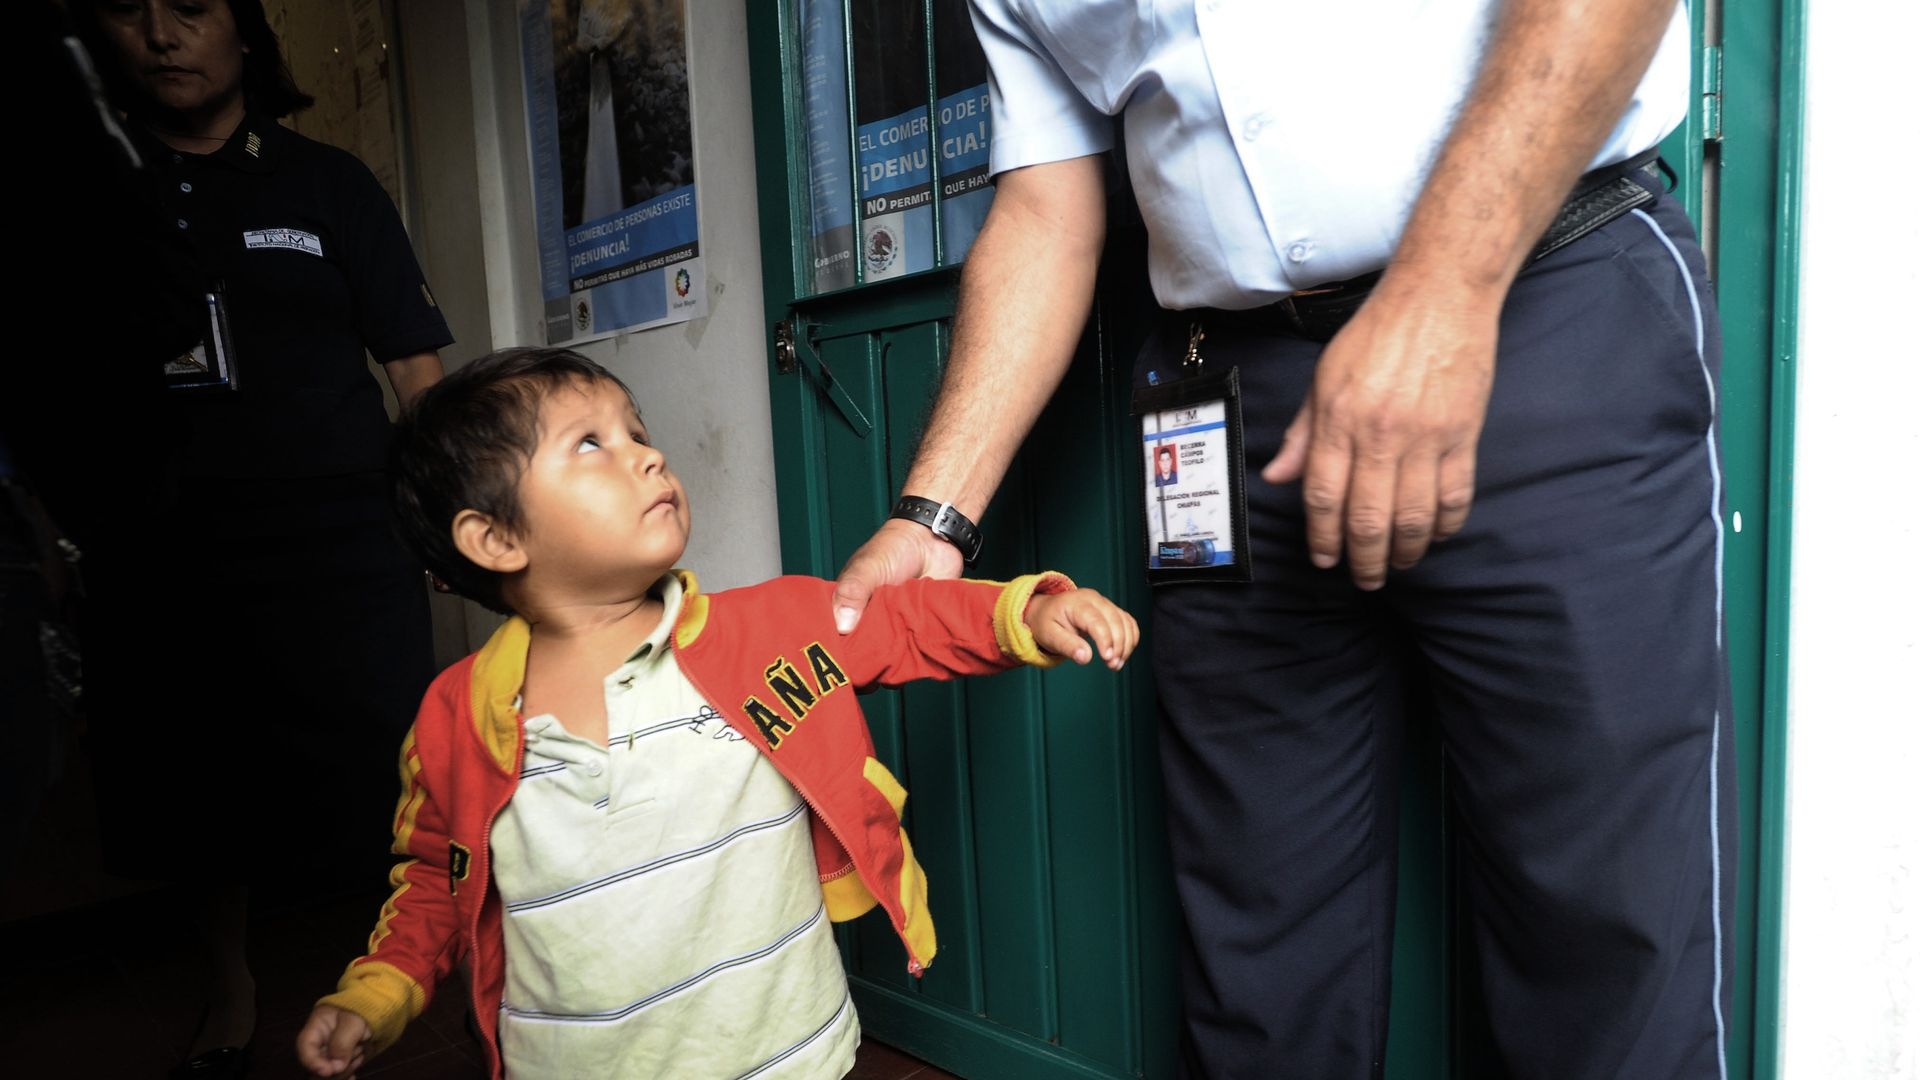 An immigrant child with a police officer.